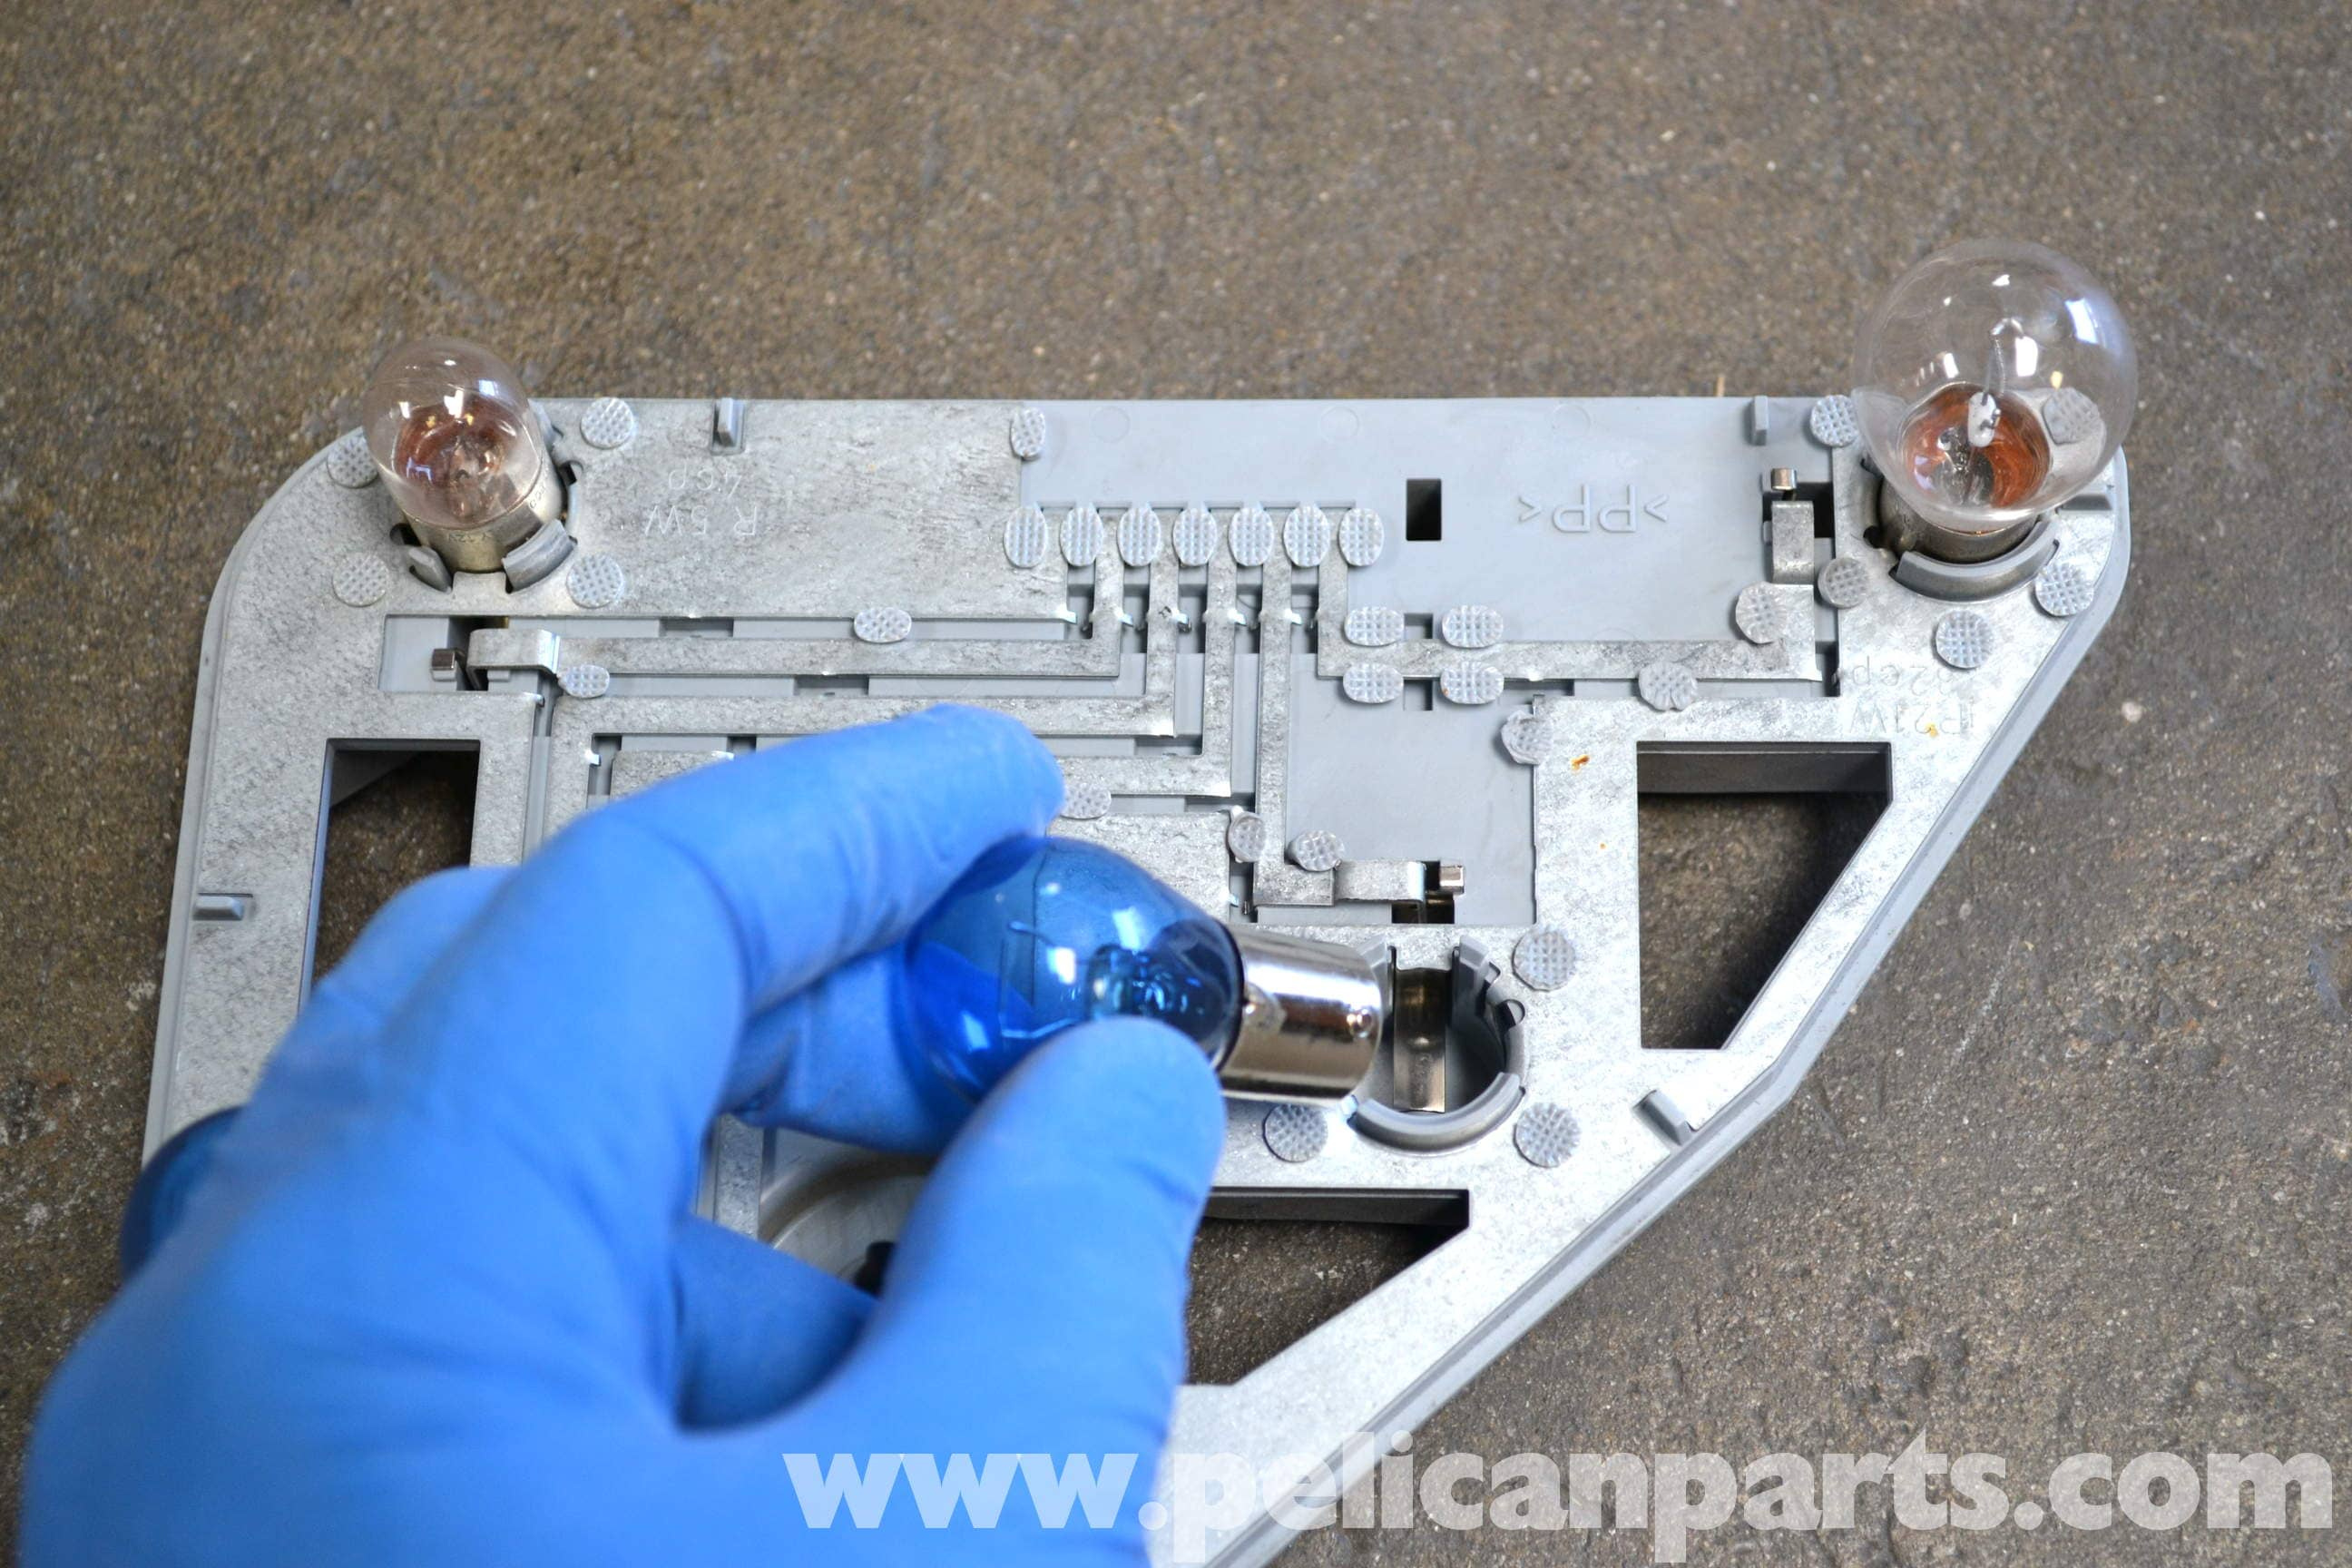 Mercedes-Benz W203 Tail Light Bulb and Assembly Replacement